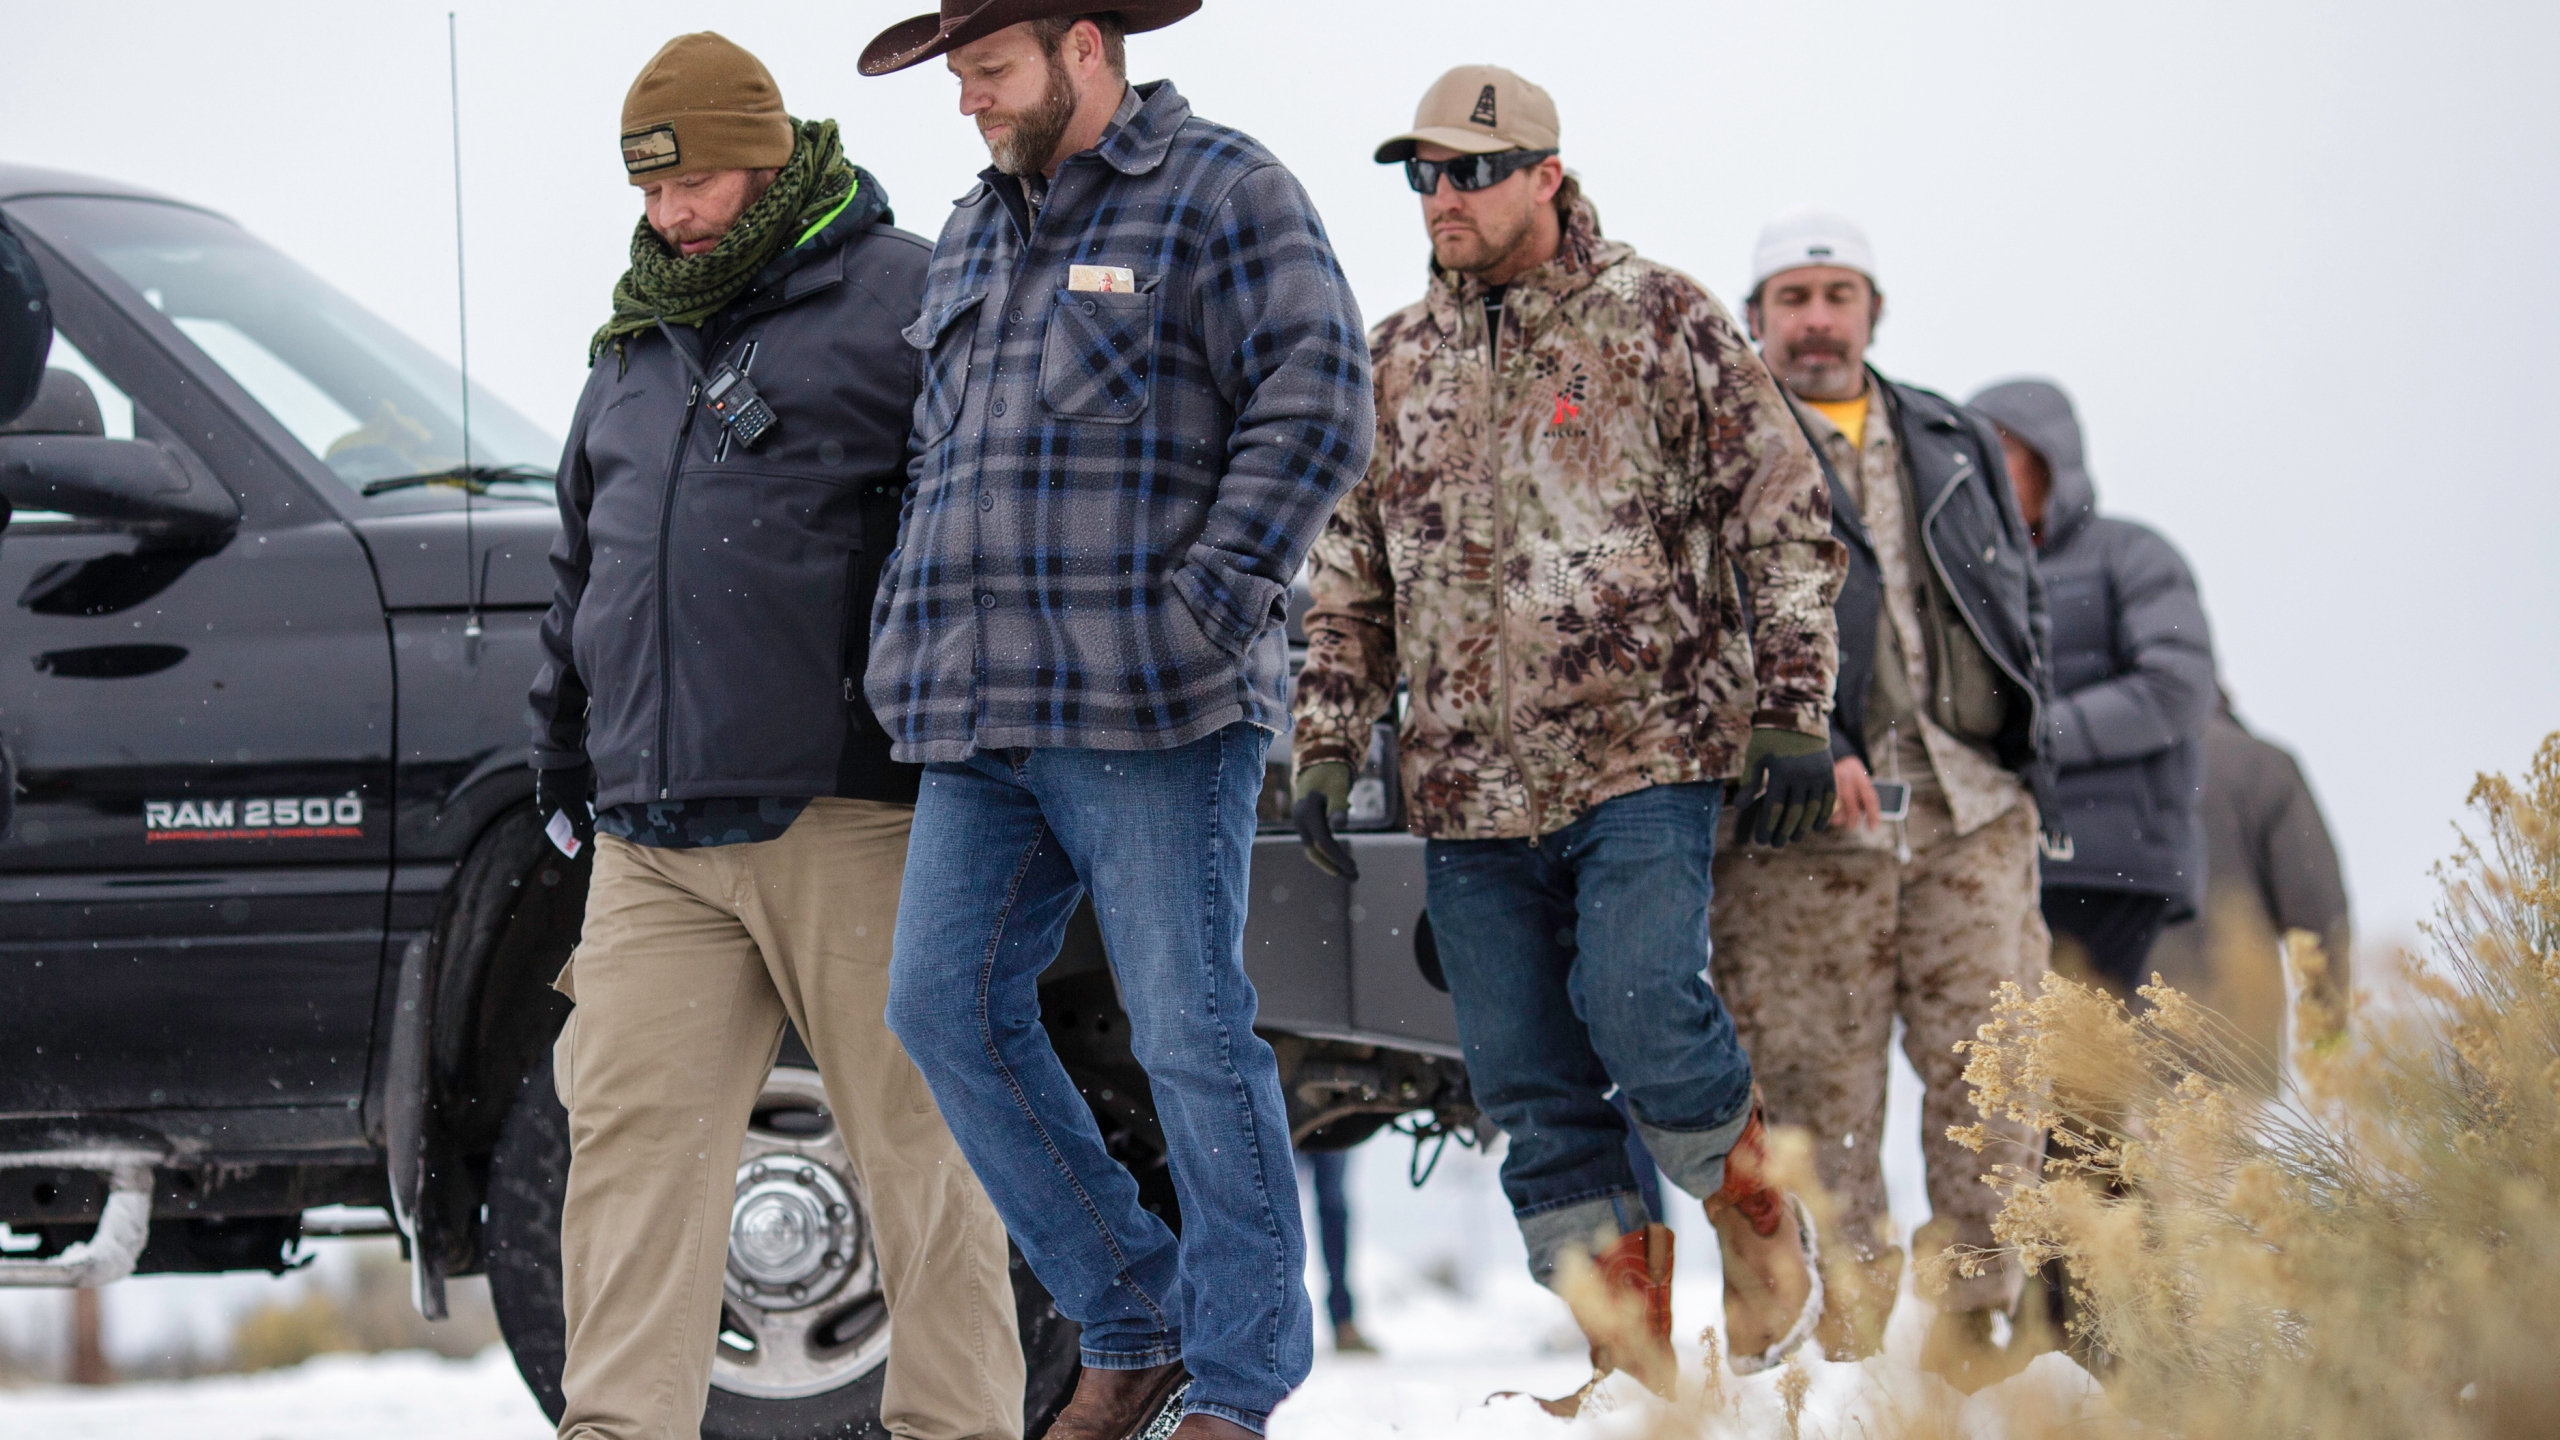 Ammon Bundy, in front, leader of an armed anti-government militia, returns to the Malheur National Wildlife Refuge Headquarters near Burns, Oregon Jan. 5, 2016, following a news conference. (Rob Kerr/AFP/Getty Images)